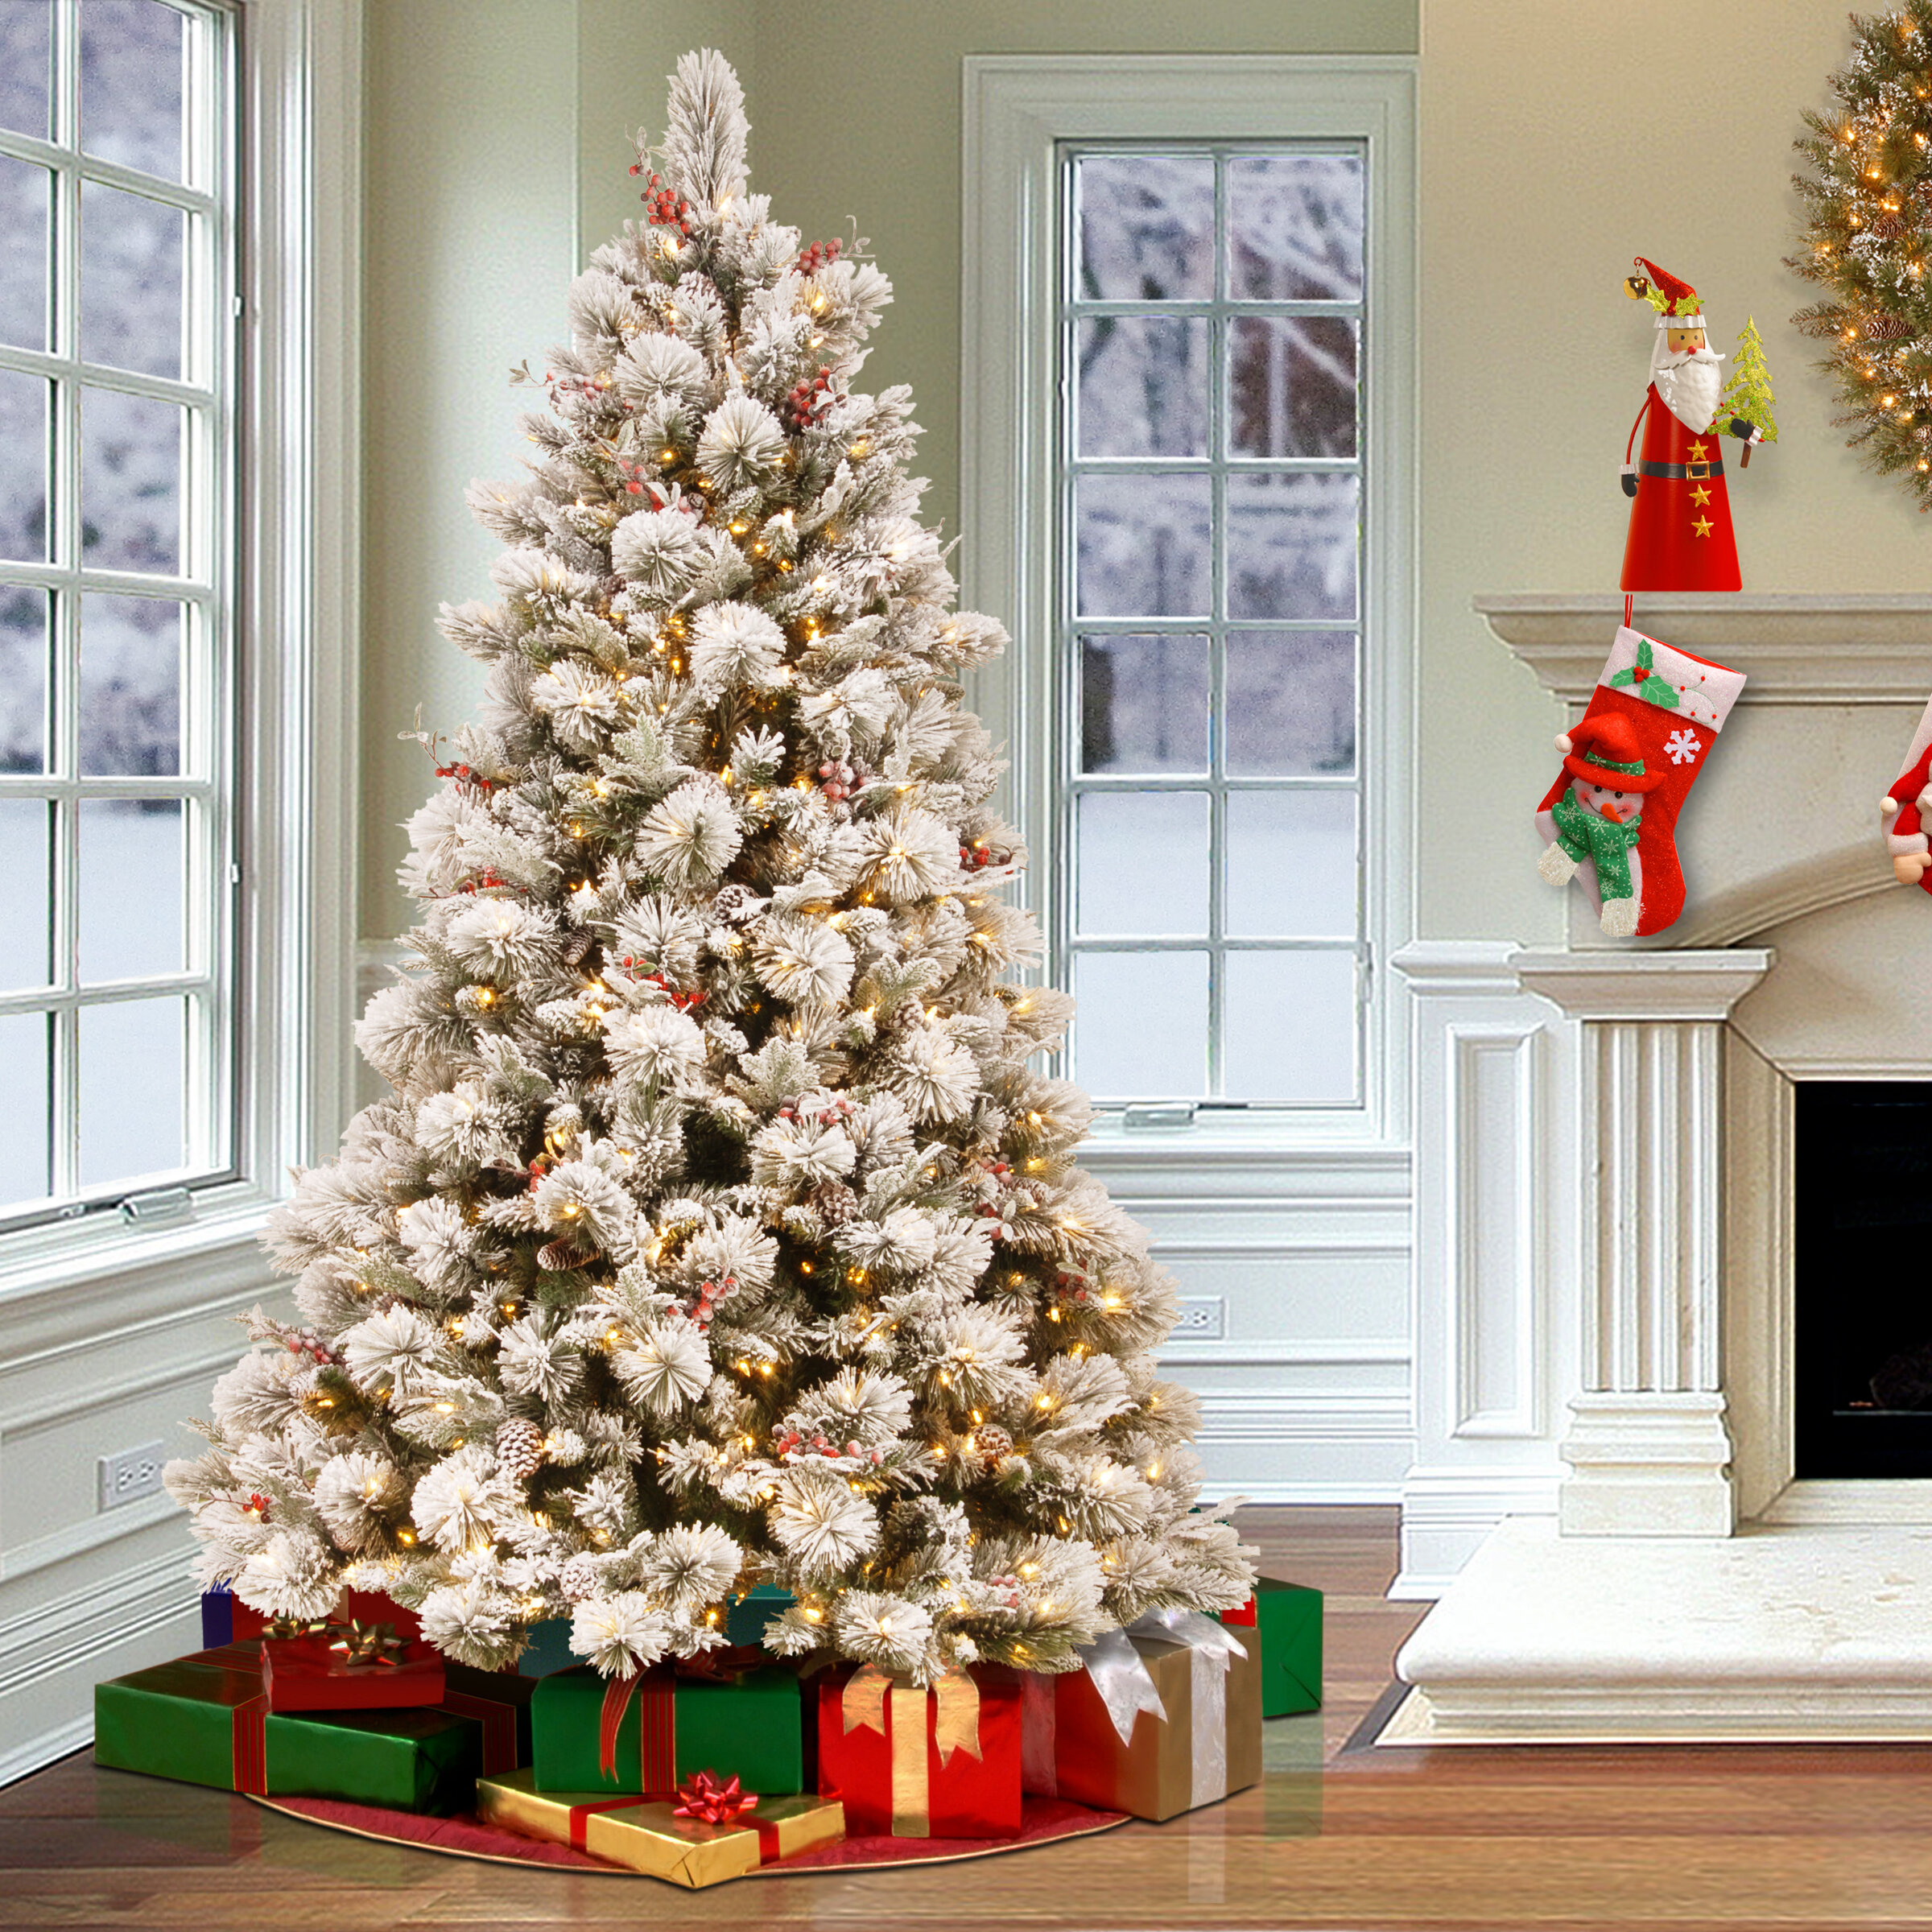 Snowy 7 5 Frosted Green Pine Artificial Christmas Tree With 700 Clear White Lights Reviews Birch Lane